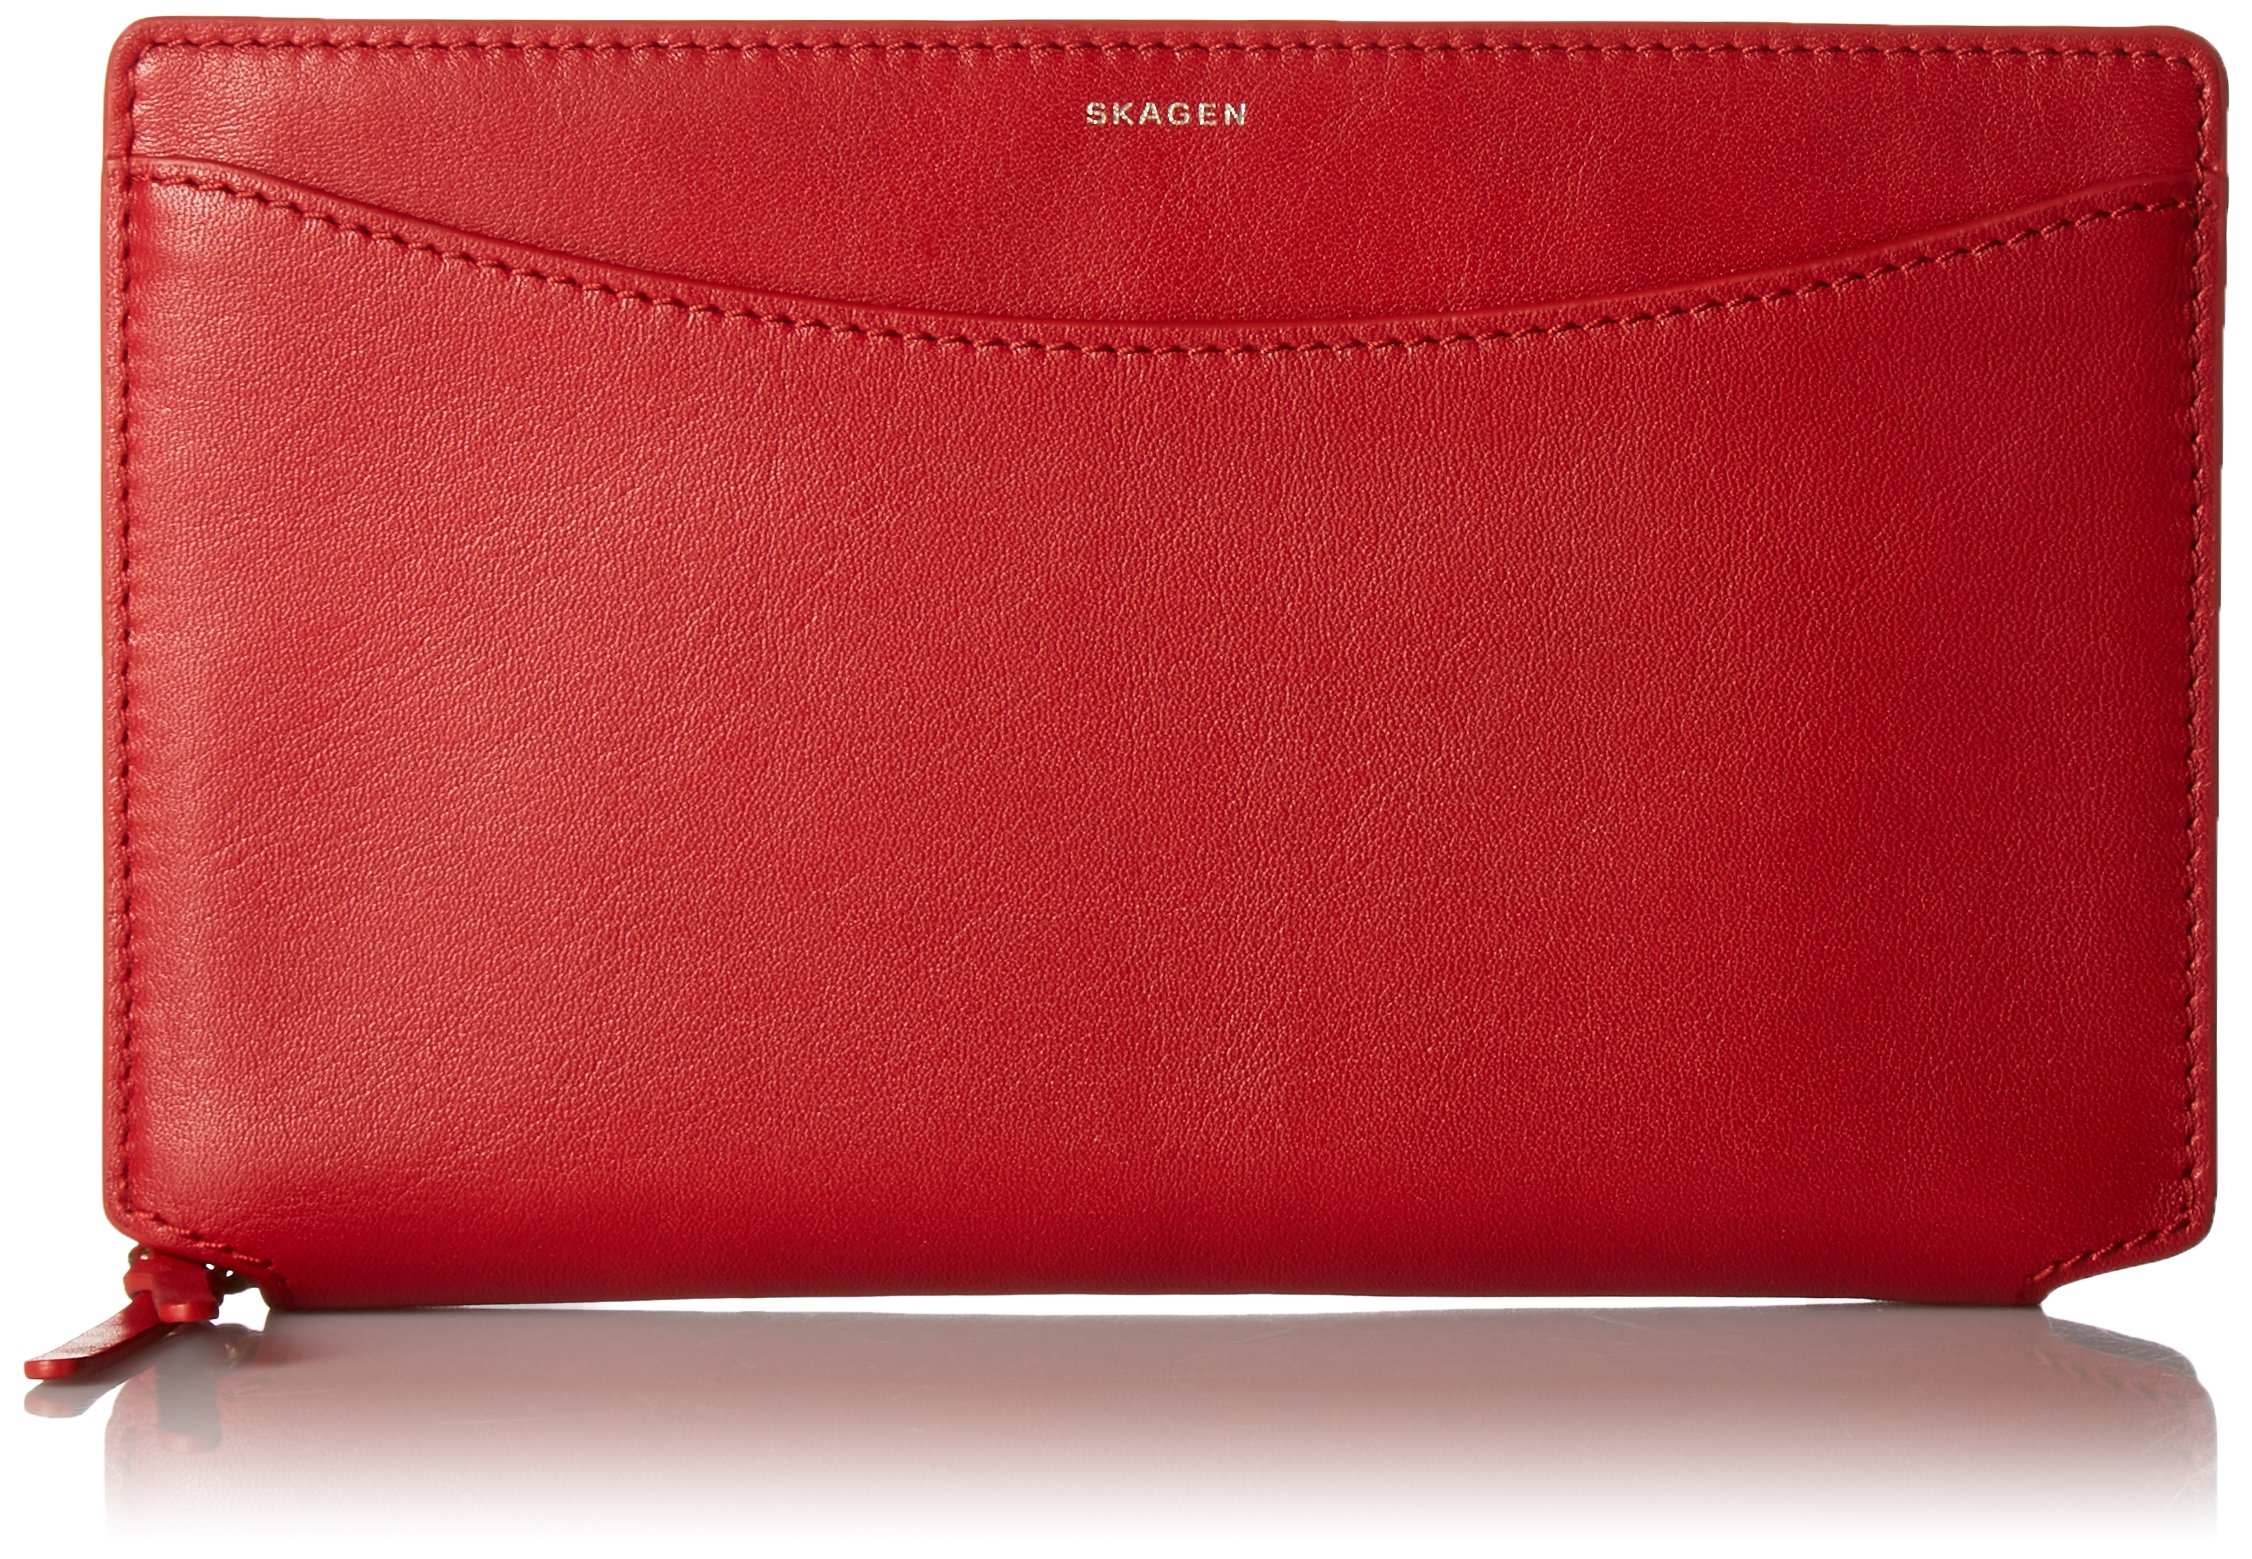 Ryle Recessed Zip Around Wallet - Red Wallet, One Size